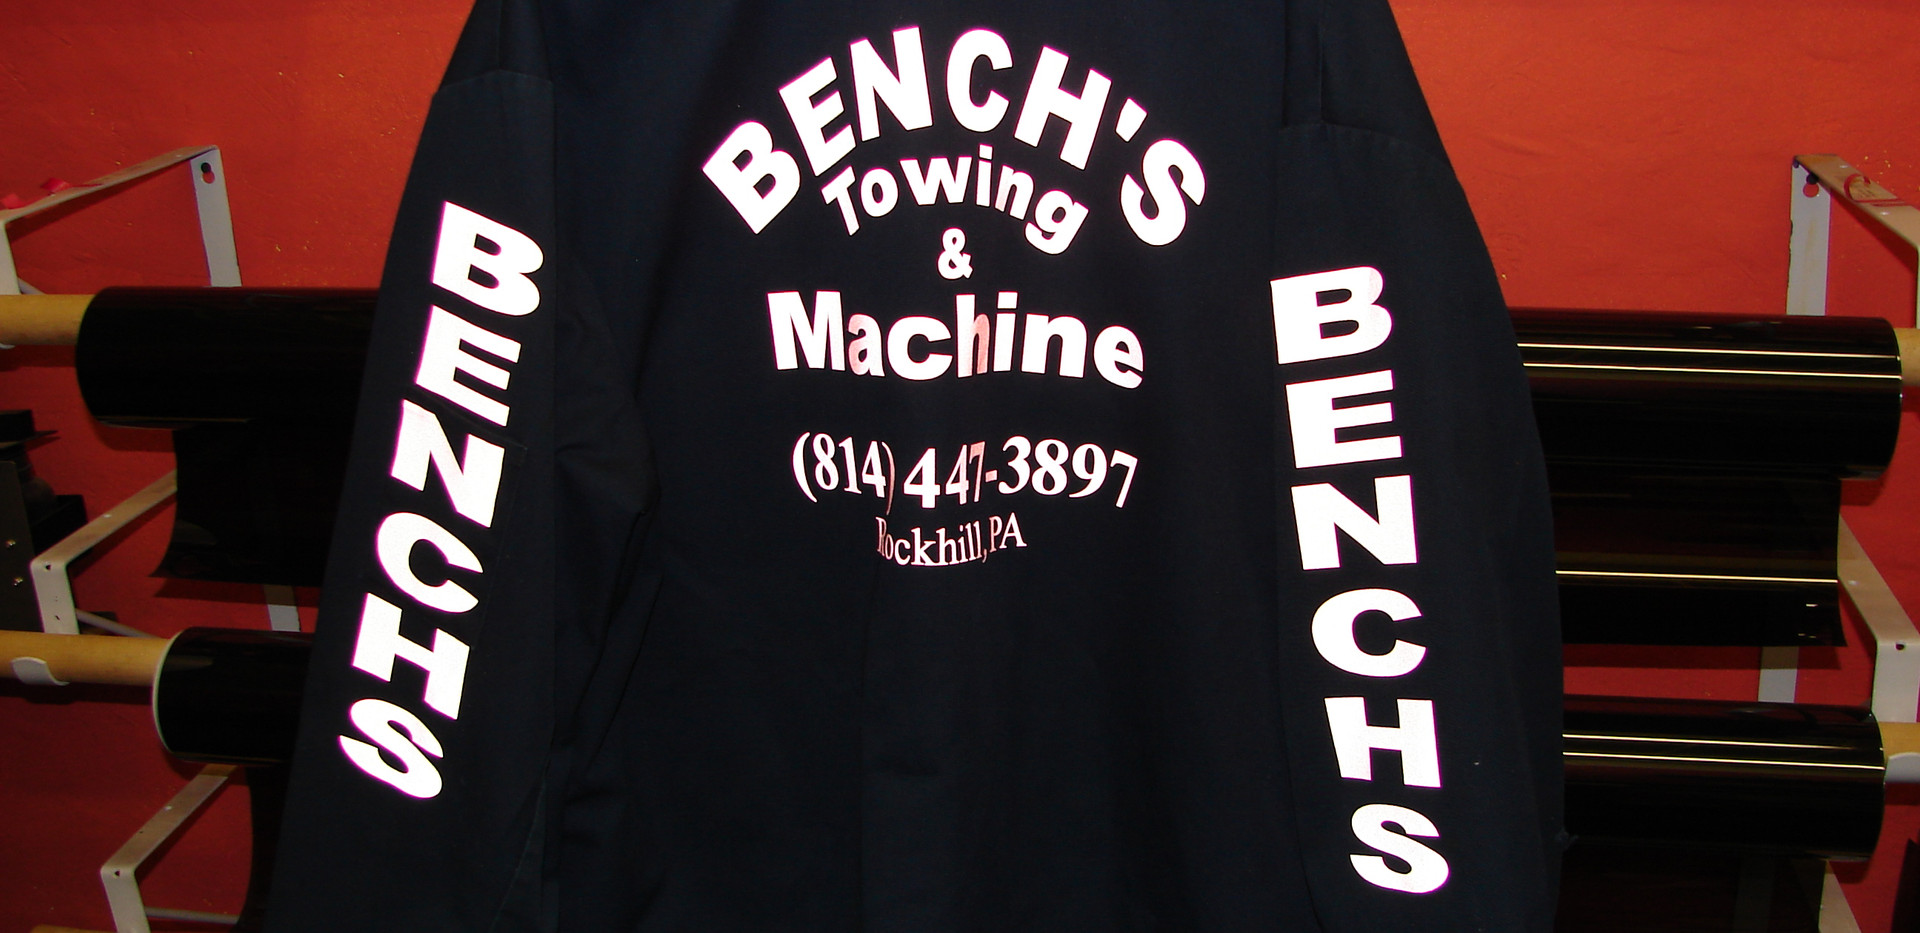 Bench's Towing